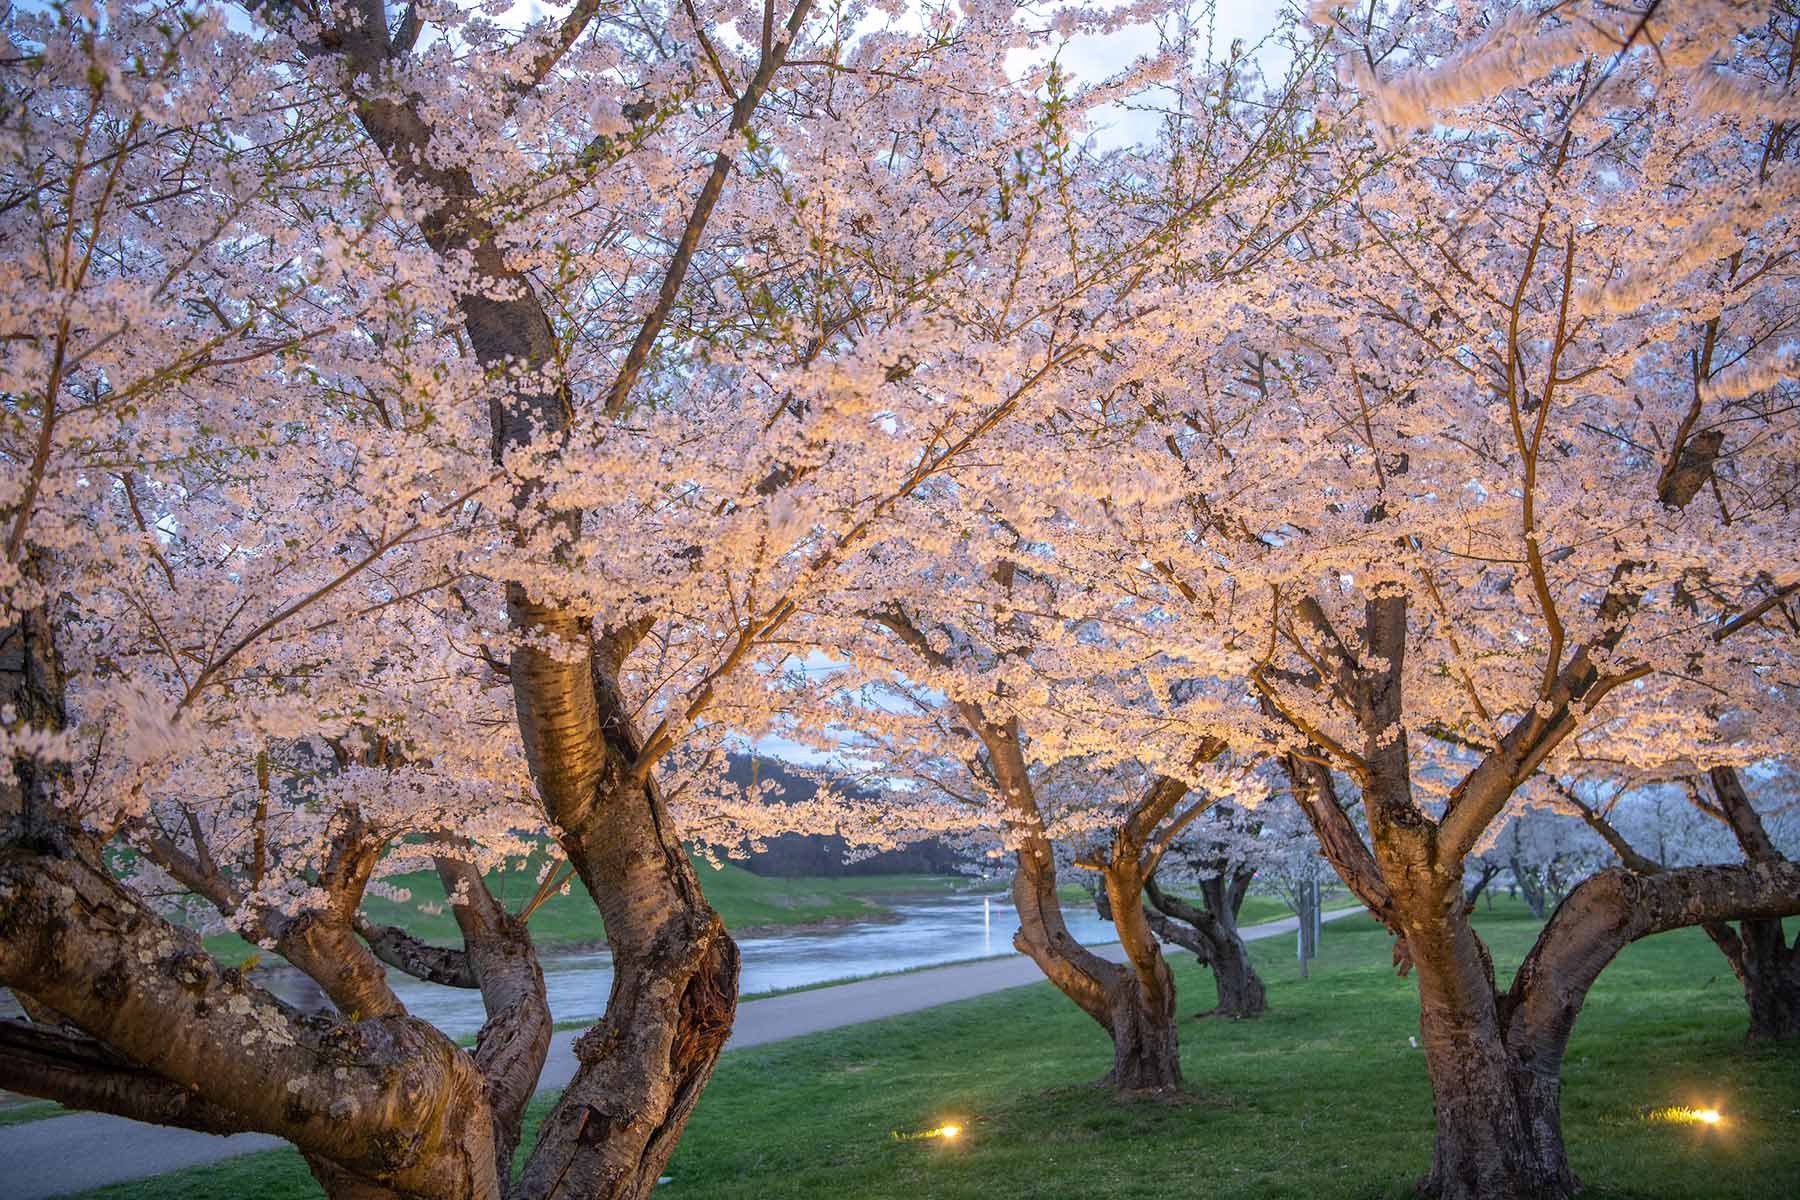 Lighted cherry blossom trees along the Athens campus bike path